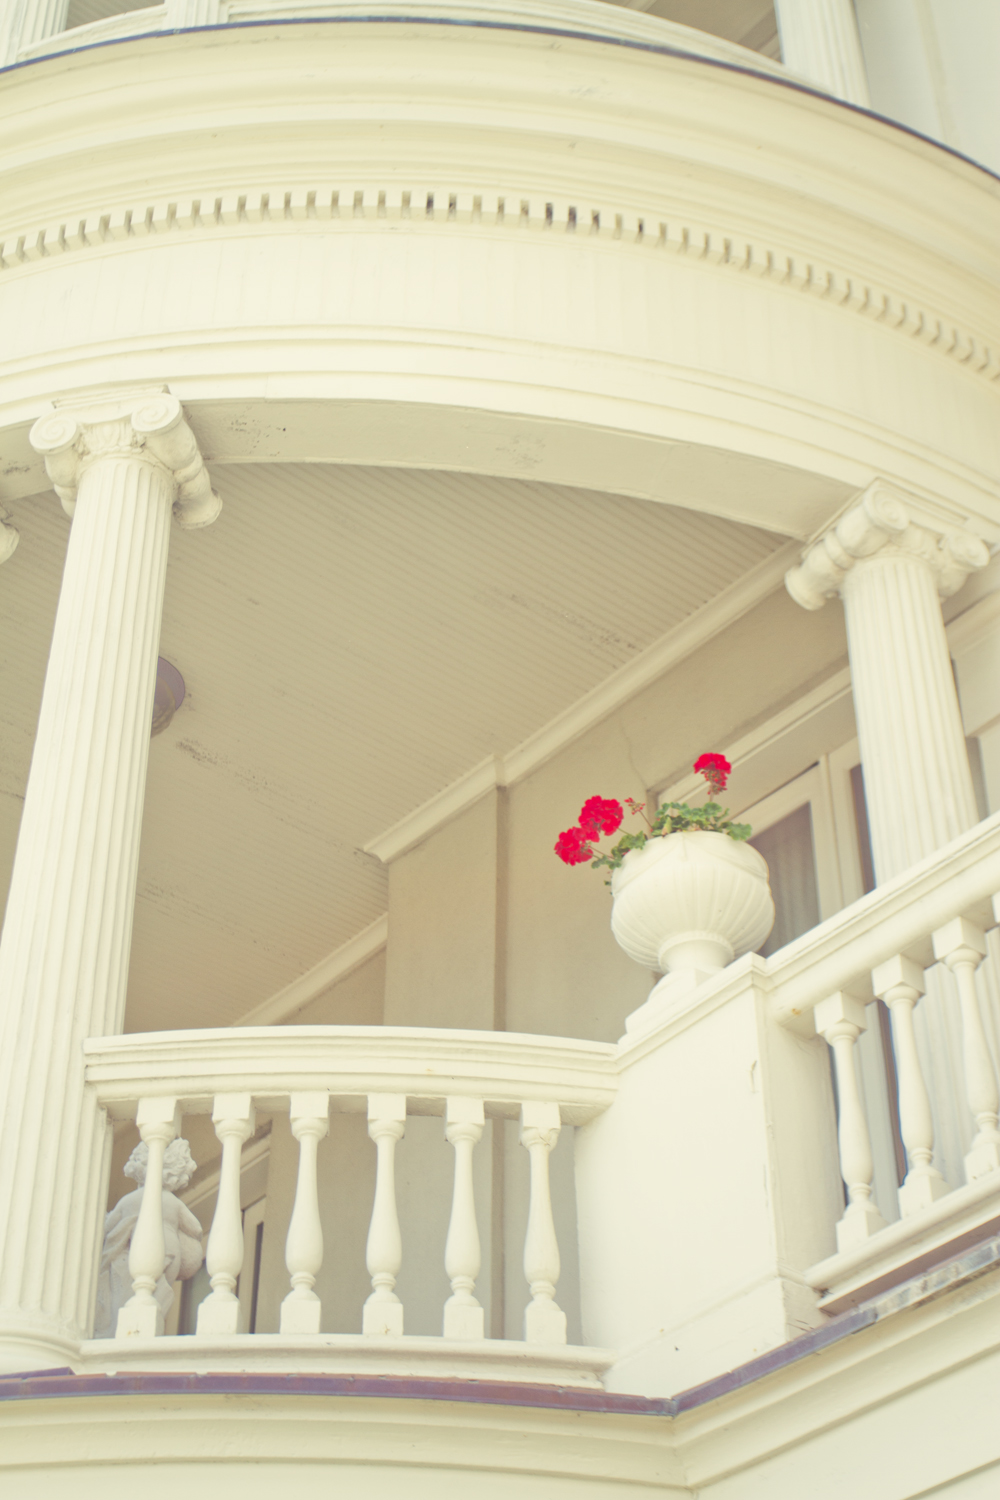 The architecture in Charleston is ornate, charming, often very lavish.